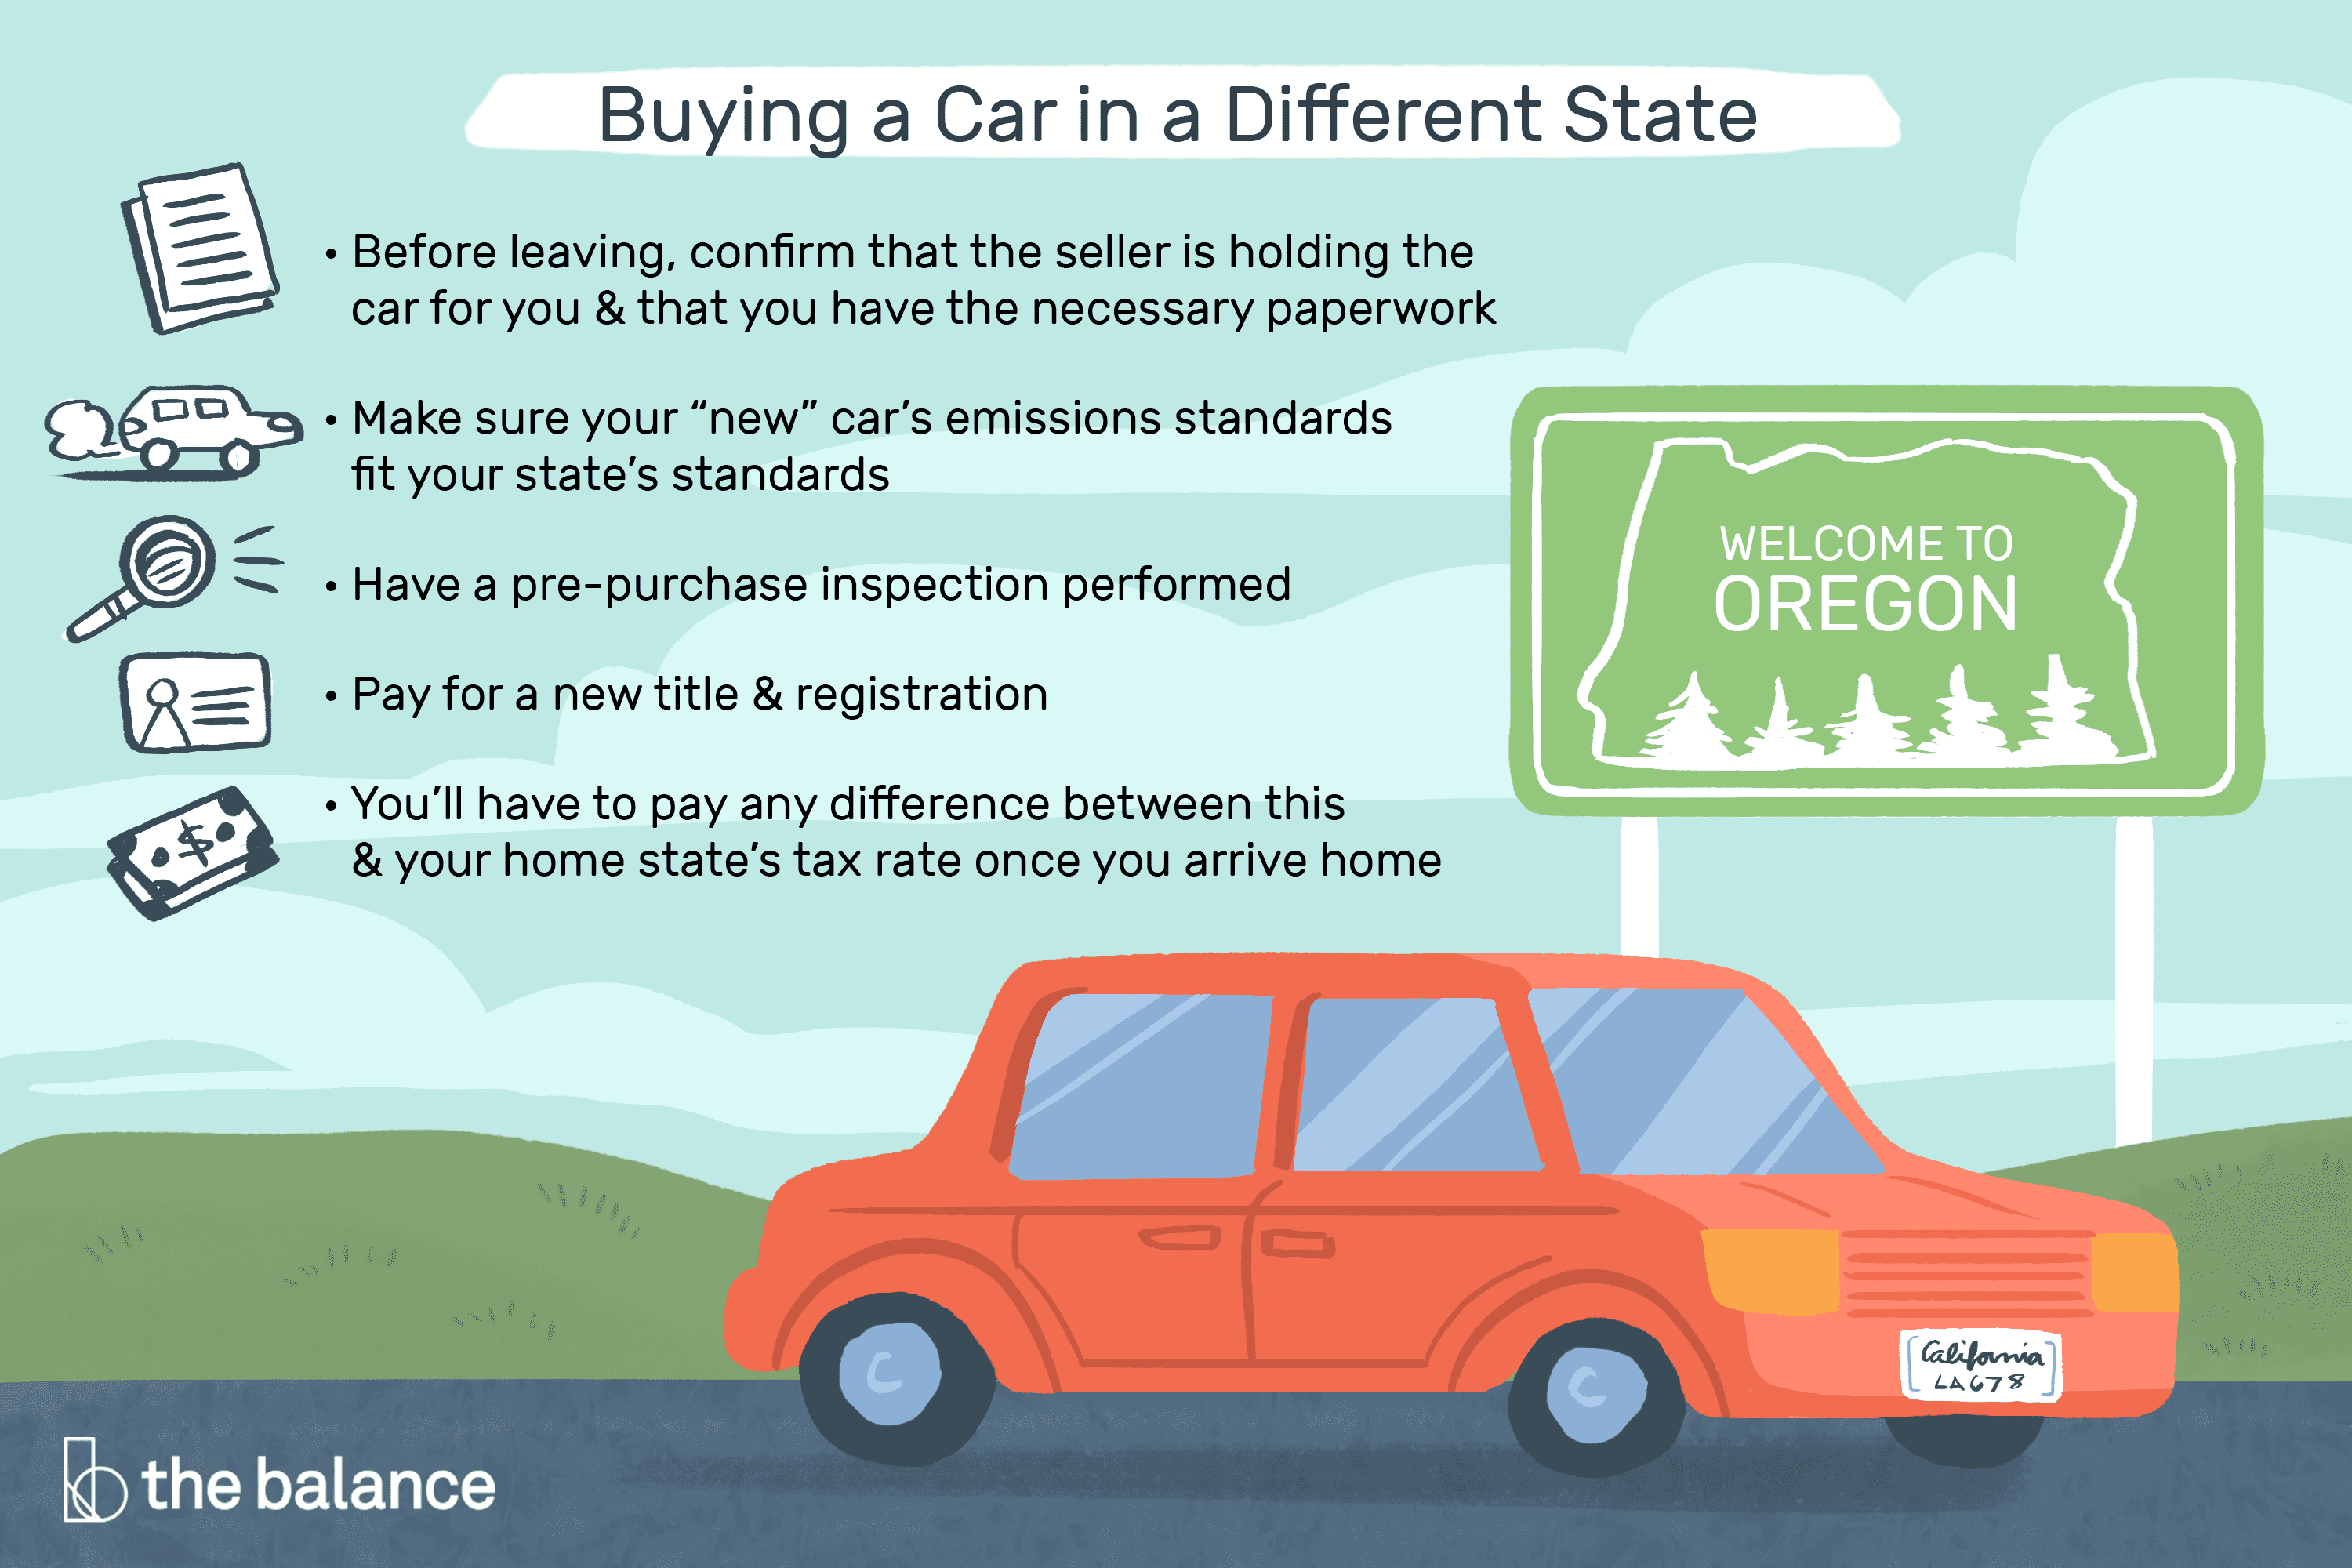 Tips for Buying a Car in a Different State